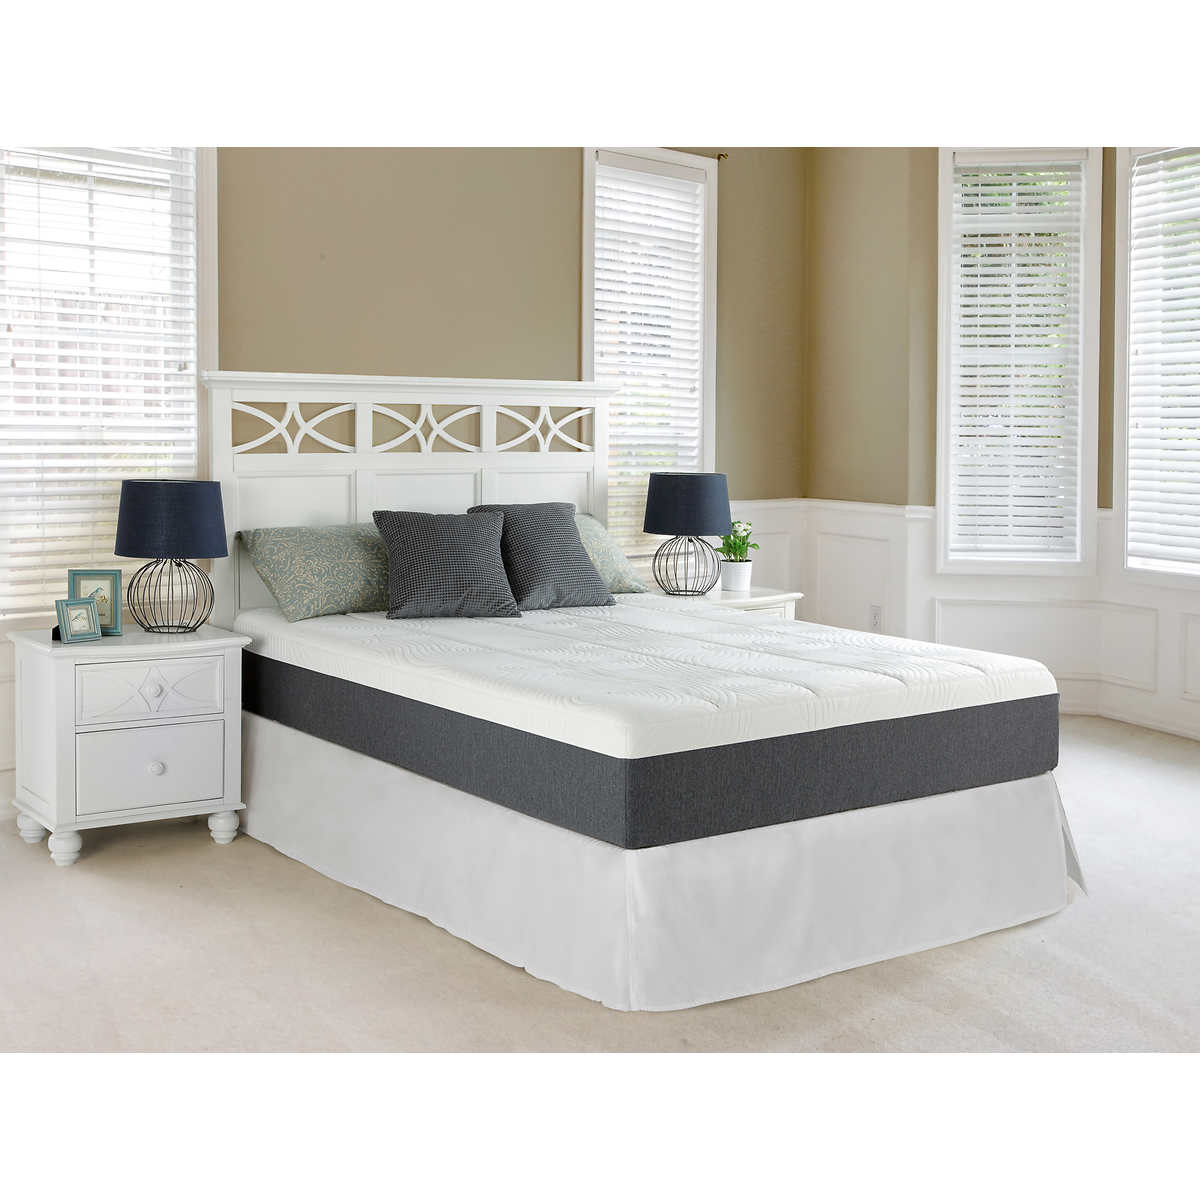 12 inch memory foam mattress costco Blackstone 12